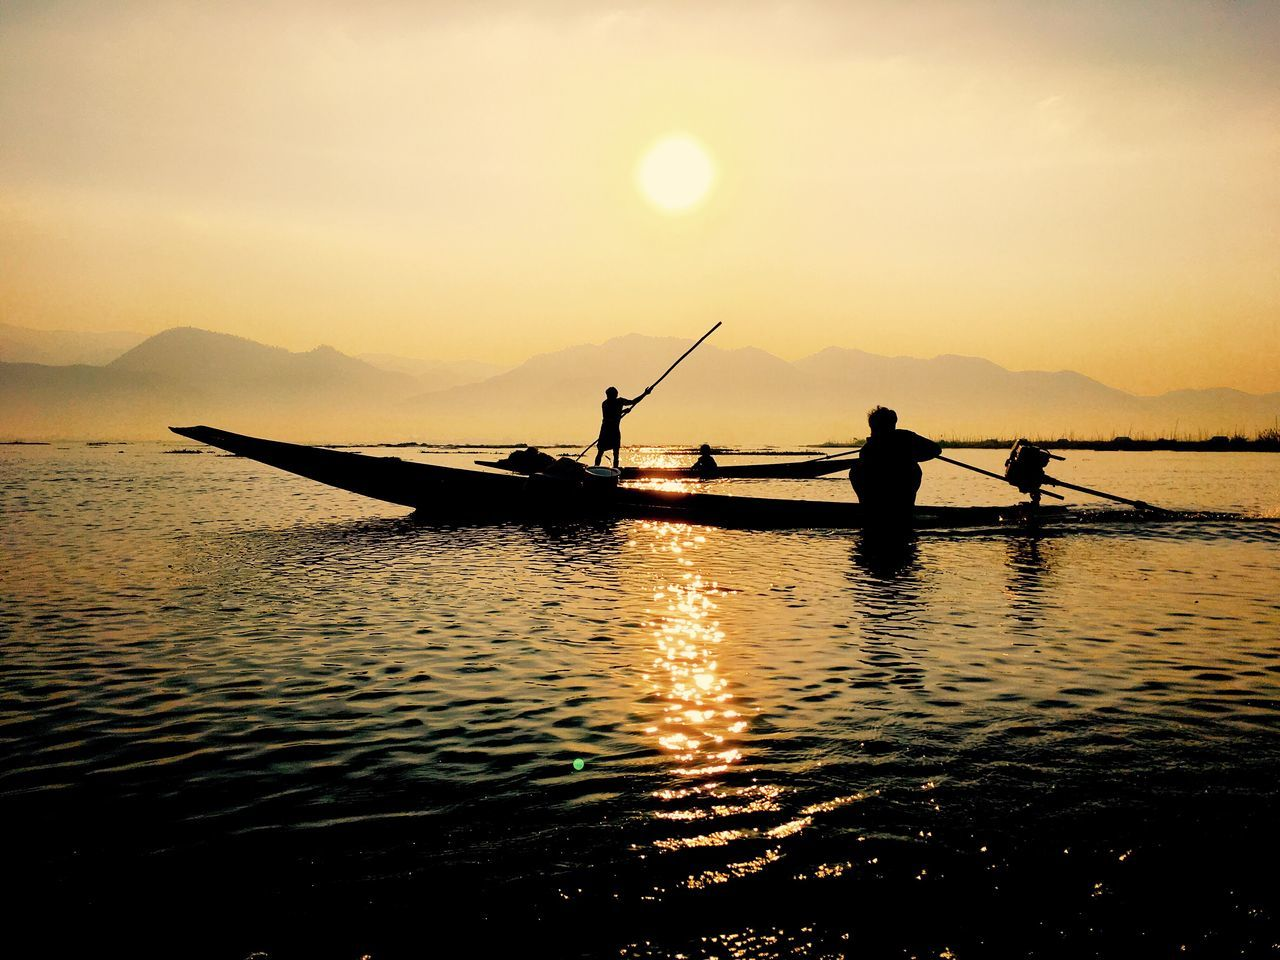 sunset, silhouette, water, nautical vessel, nature, men, transportation, real people, beauty in nature, scenics, sky, oar, one person, outdoors, occupation, rowing, standing, lifestyles, lake, day, people